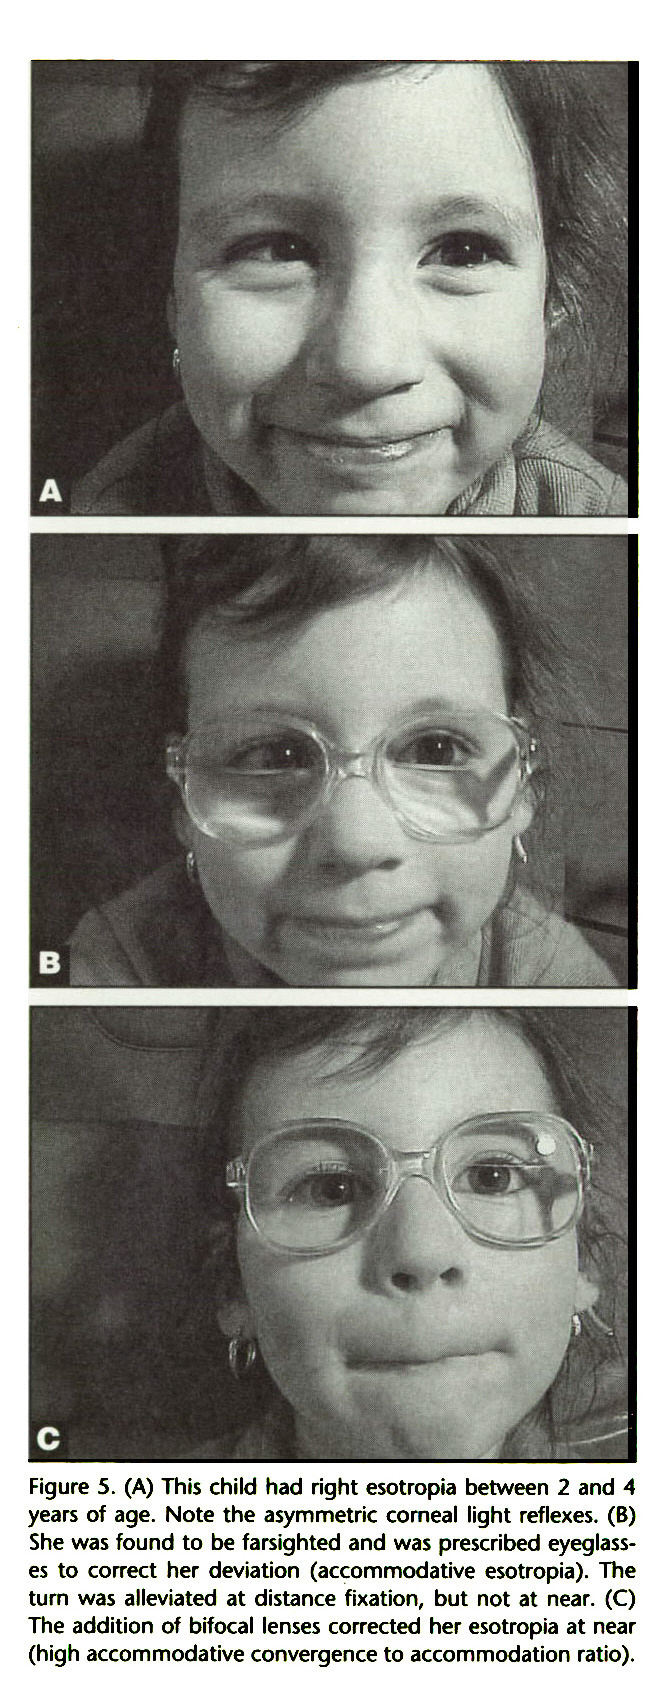 Figure 5. (A) This child had right esotropia between 2 and 4 years of age. Note the asymmetric corneal light reflexes. (B) She was found to be farsighted and was prescribed eyeglasses to correct her deviation (accommodative esotropia). The turn was alleviated at distance fixation, but not at near. (C) The addition of bifocal lenses corrected her esotropia at near (high accommodative convergence to accommodation ratio).